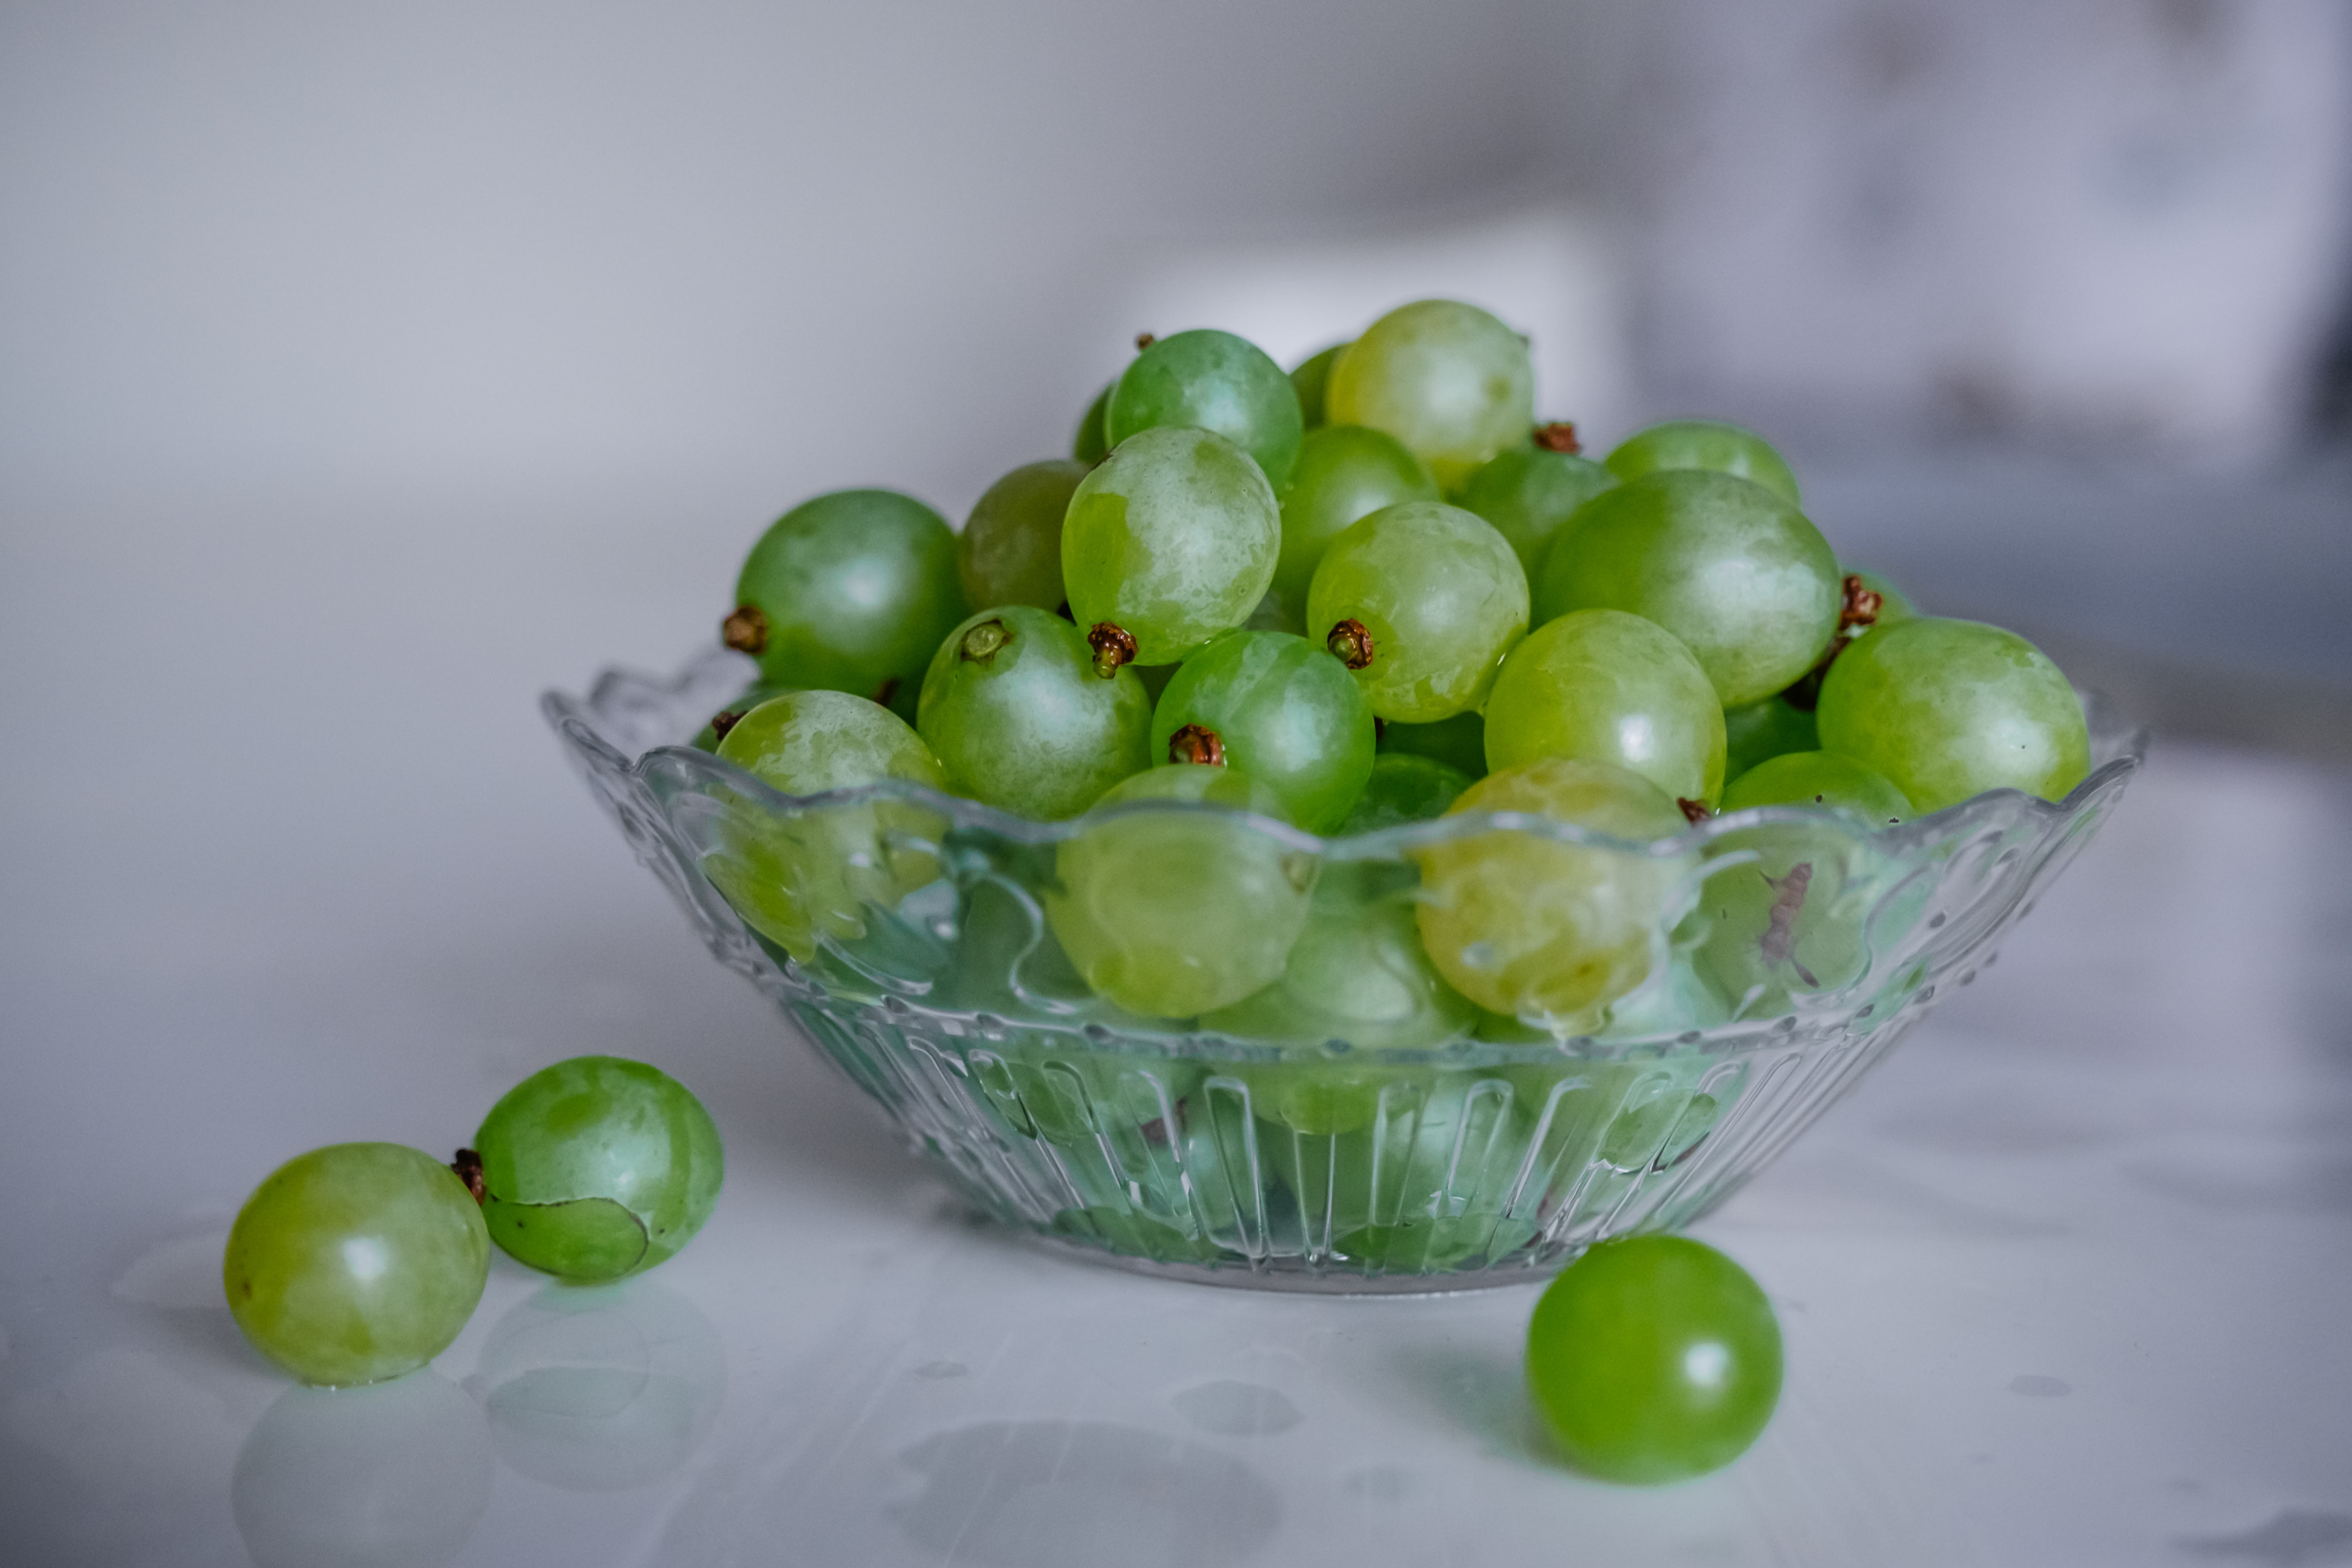 green grapes in clear glass bowl